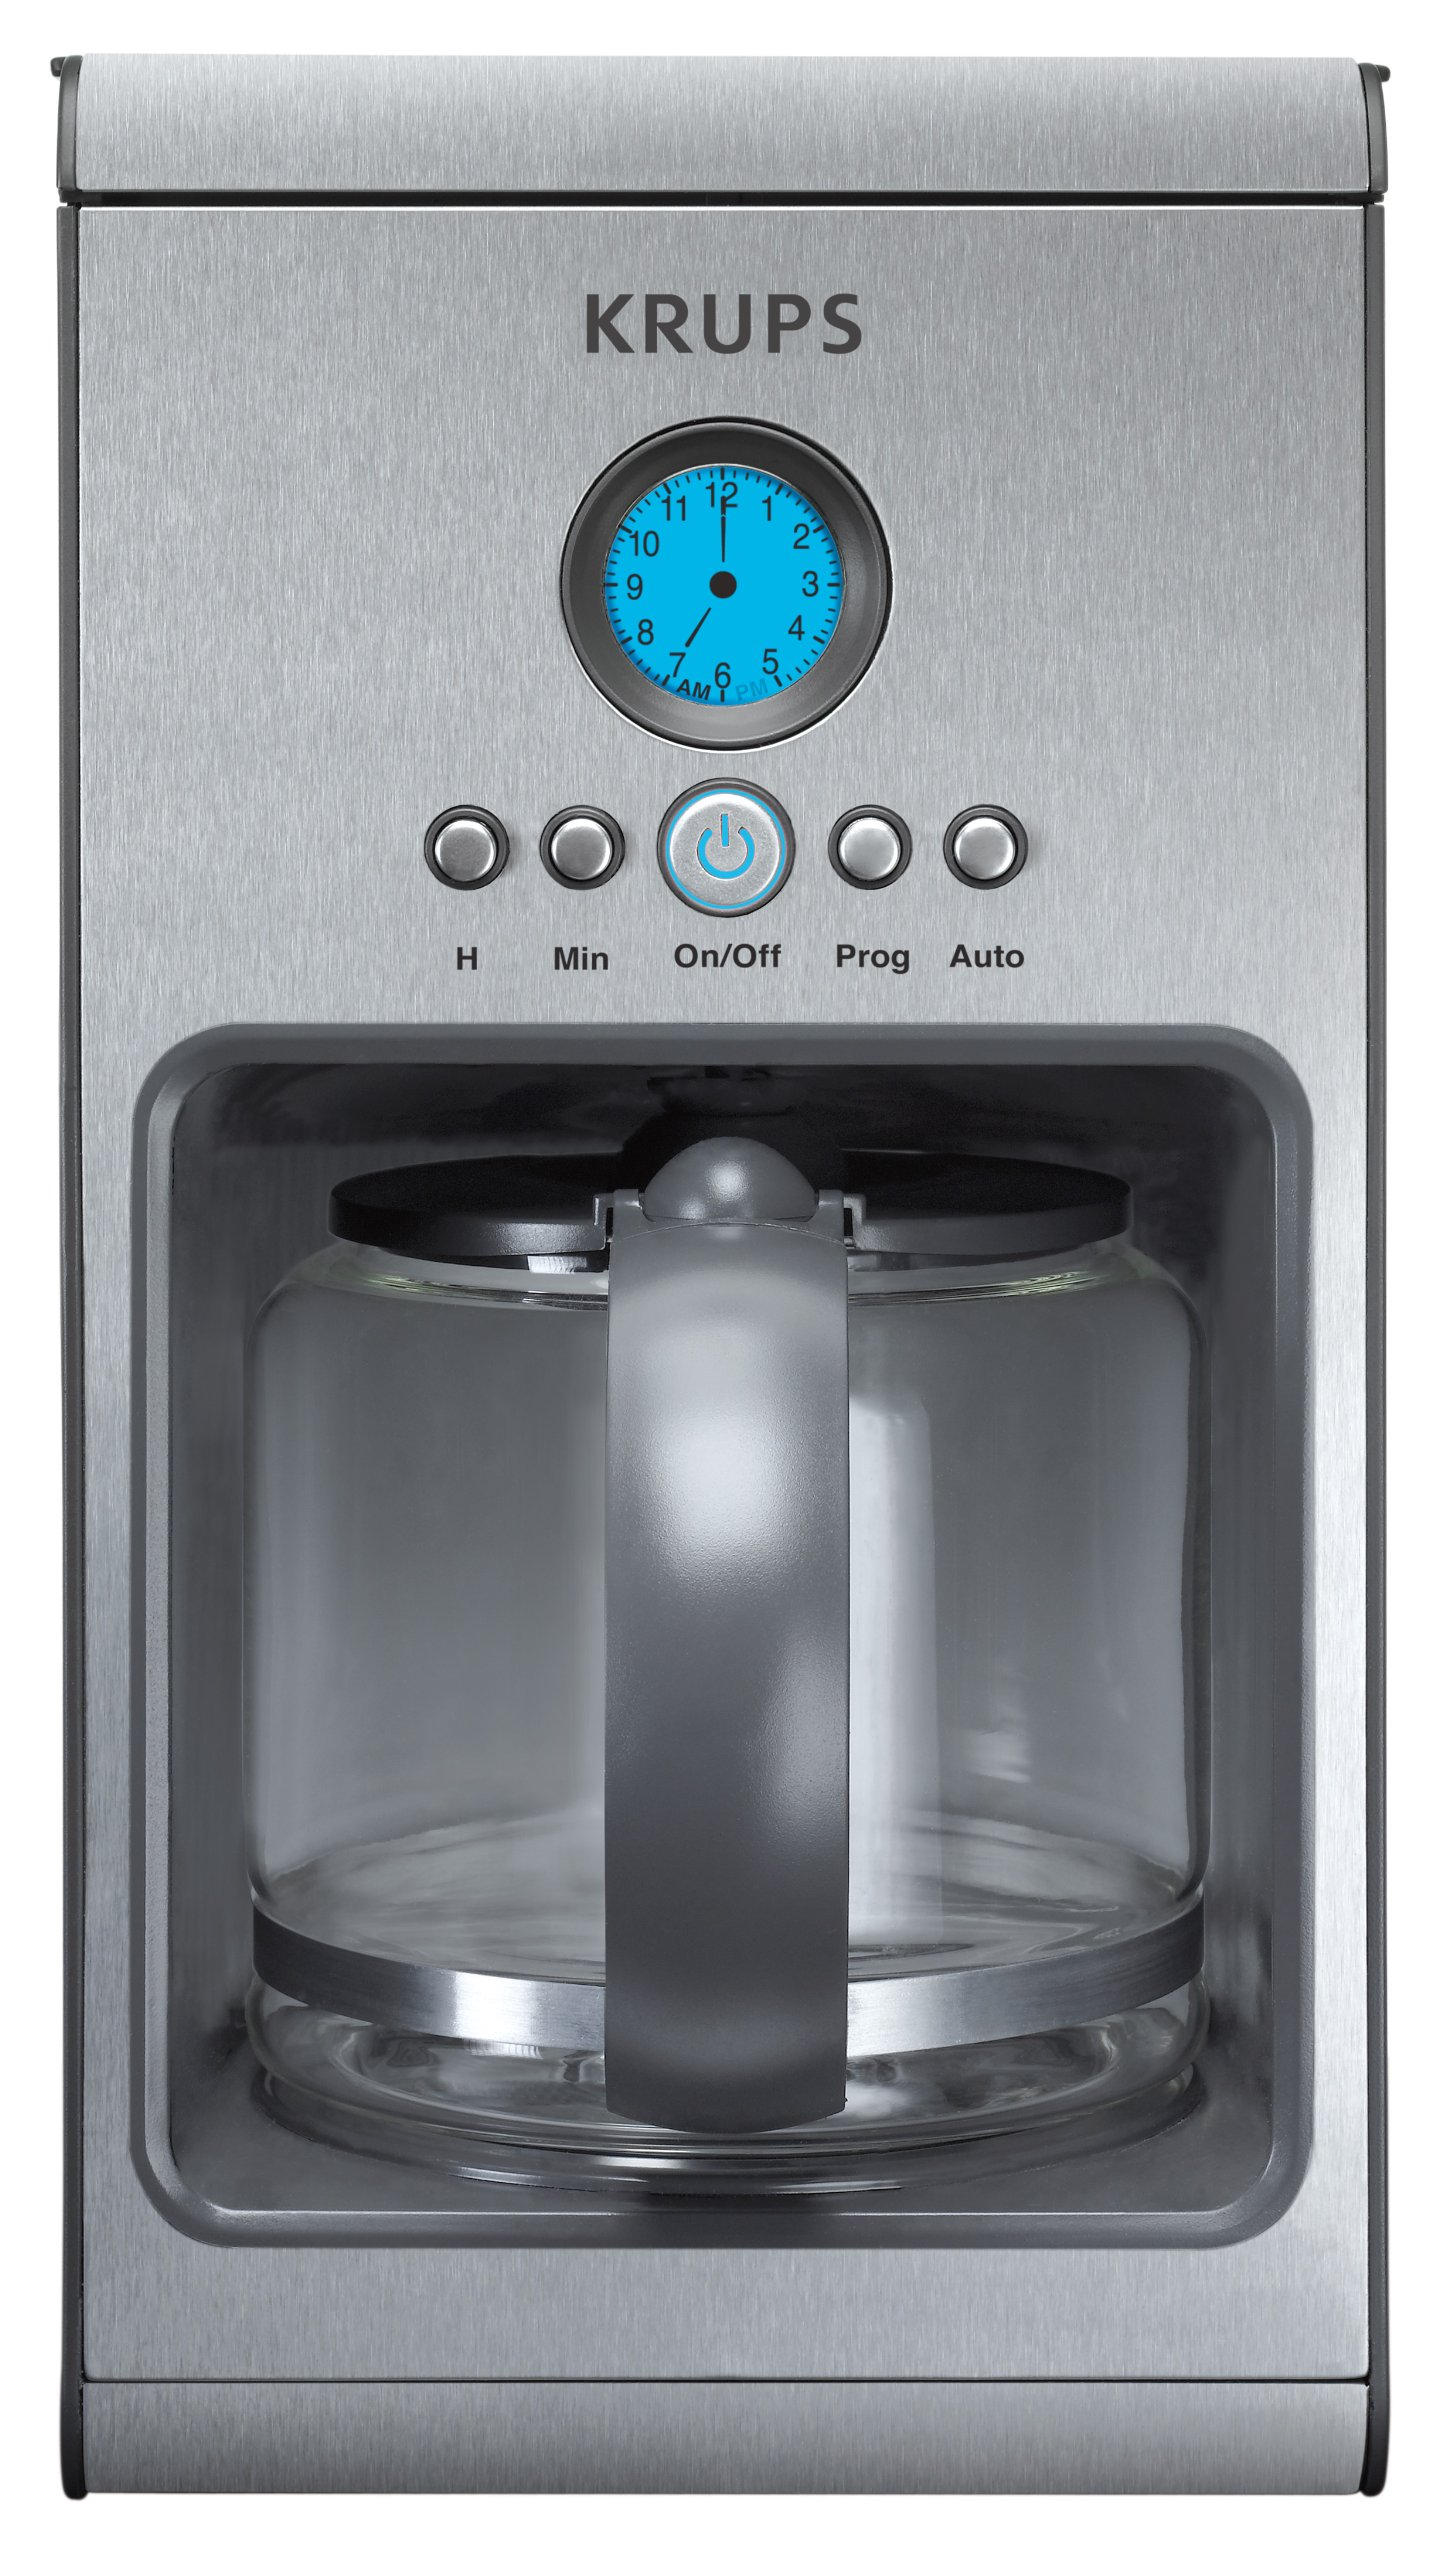 KRUPS KM1000 Prelude Coffee Maker with LCD Analog-Style Clock, Silver, 10-Cup